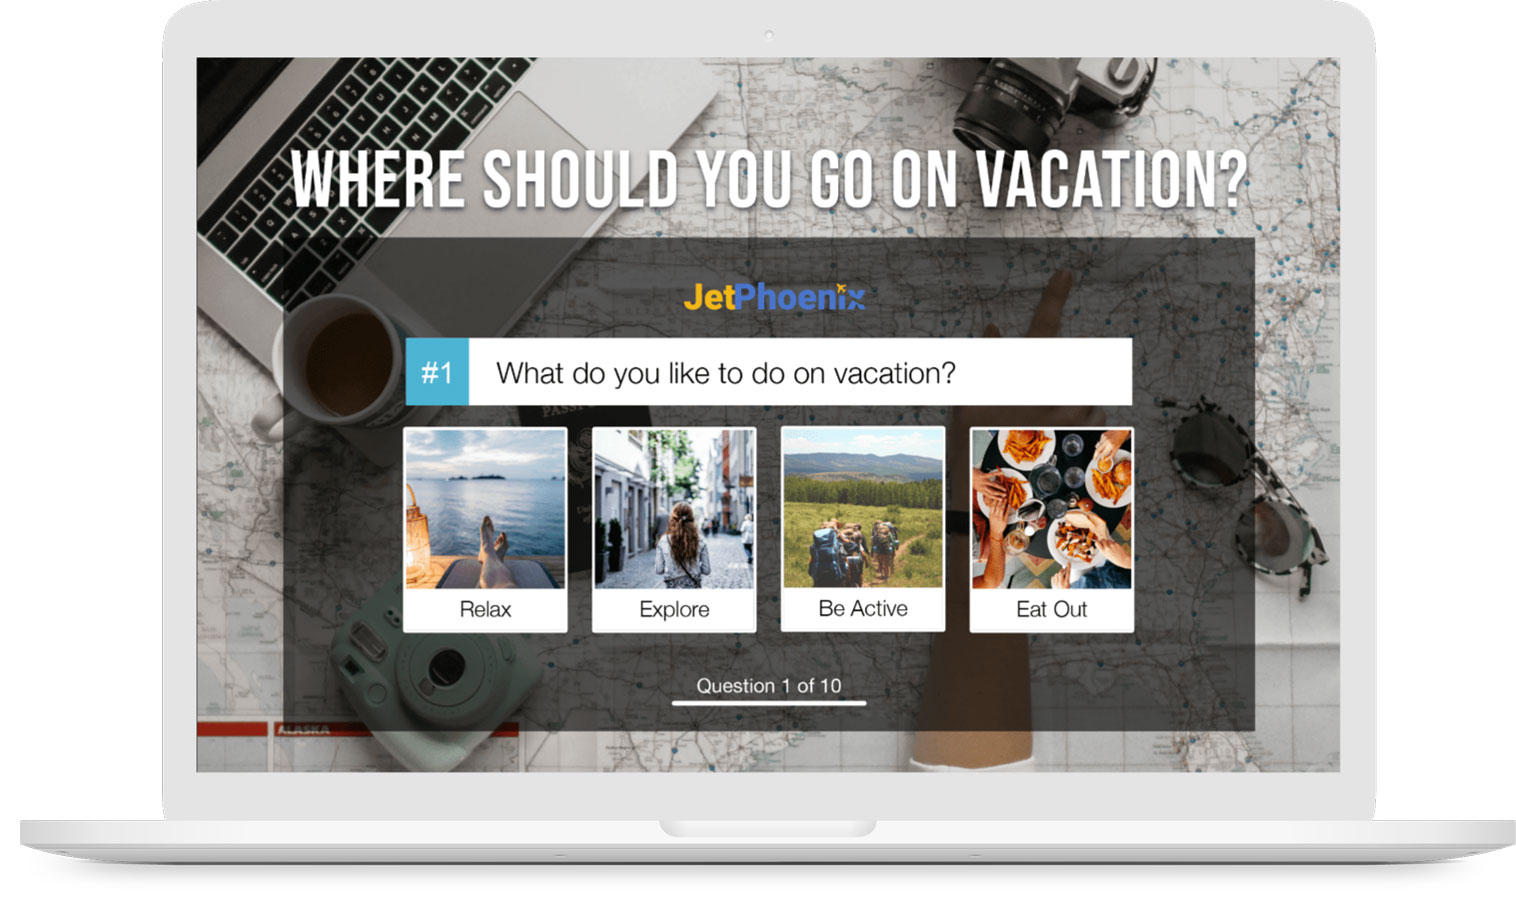 Where Should You Go On Vacation personality quiz.